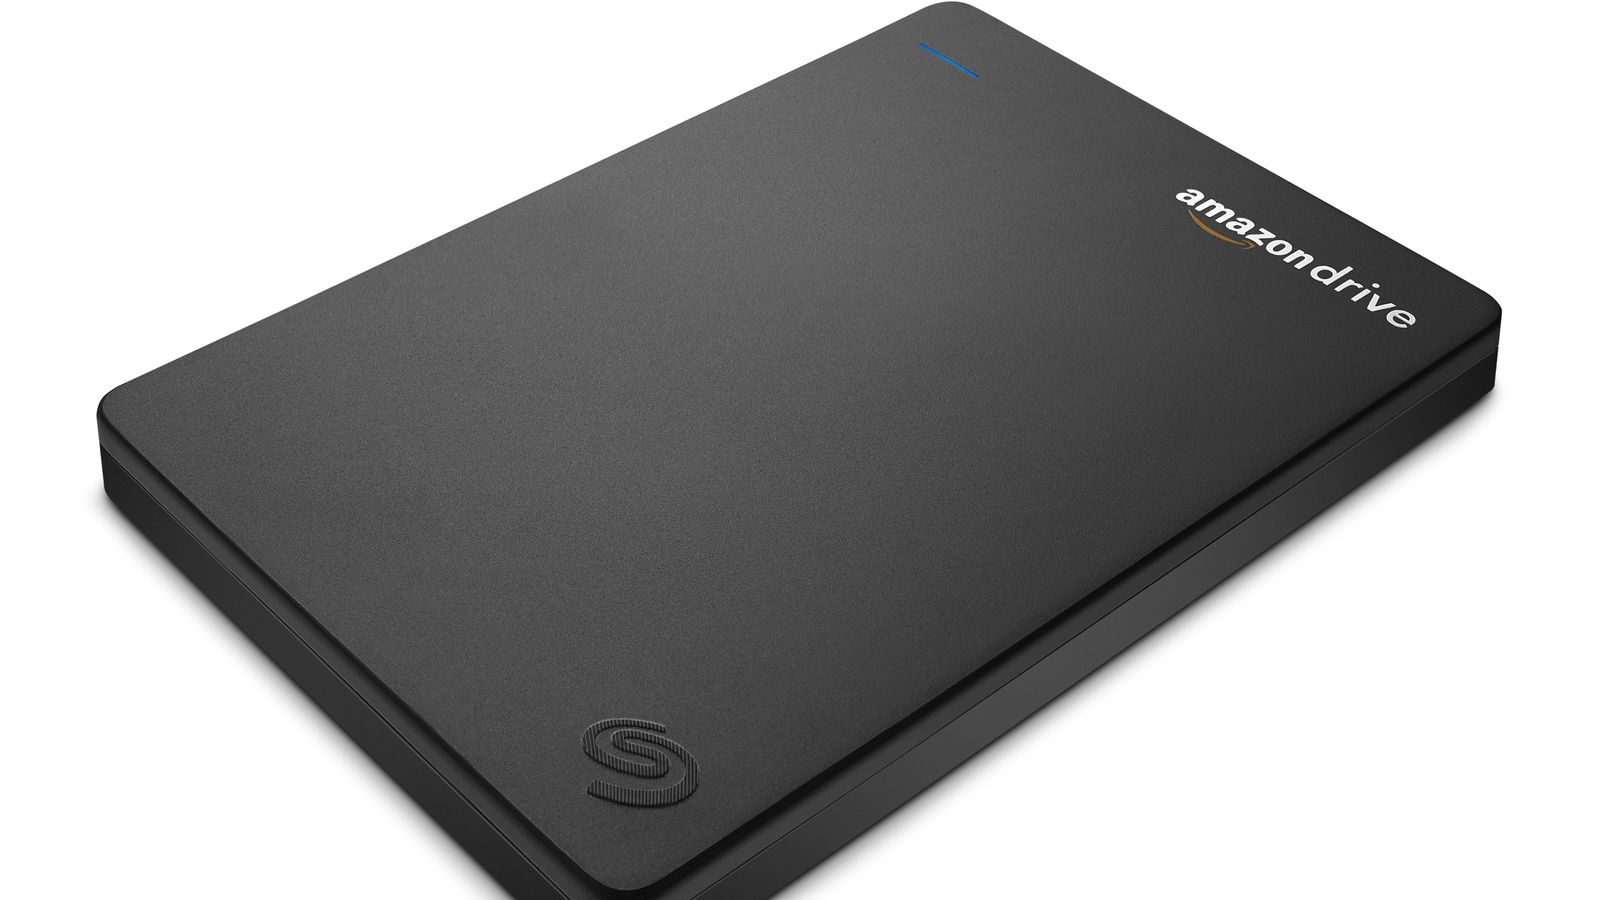 Seagate made an external hard drive that automatically backs up to Amazon's reliable cloud